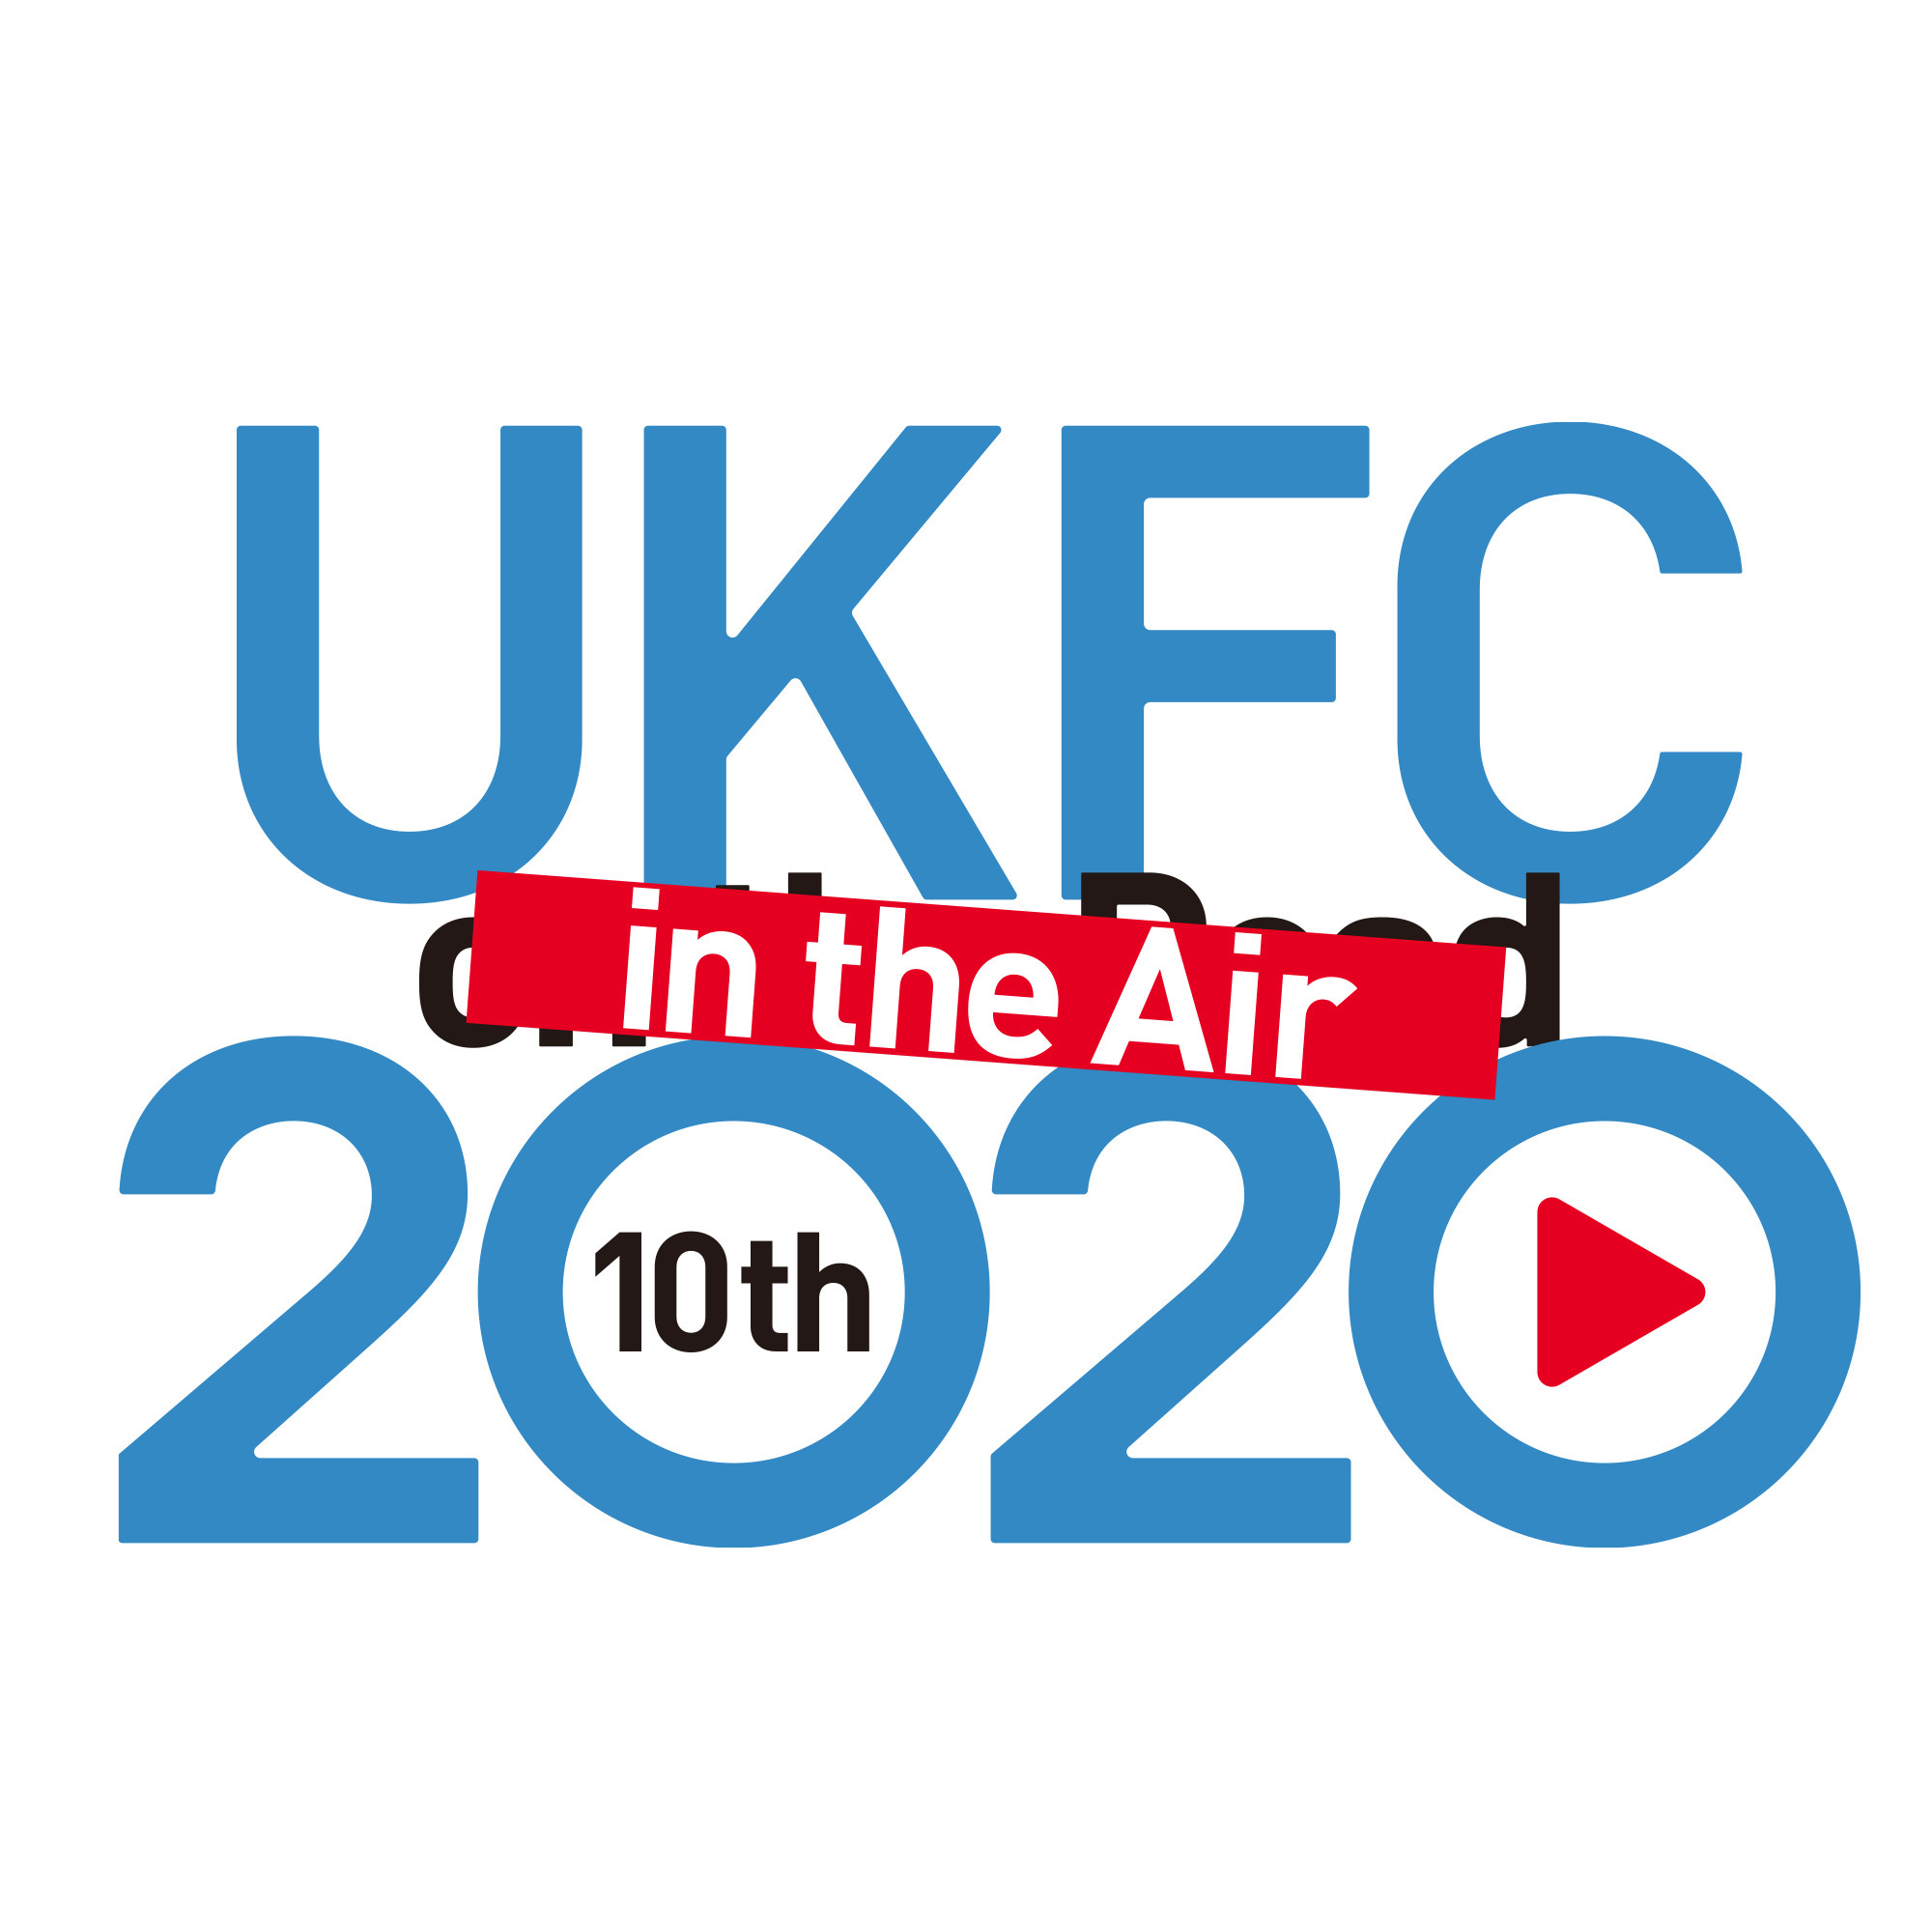 『UKFC in the Air』